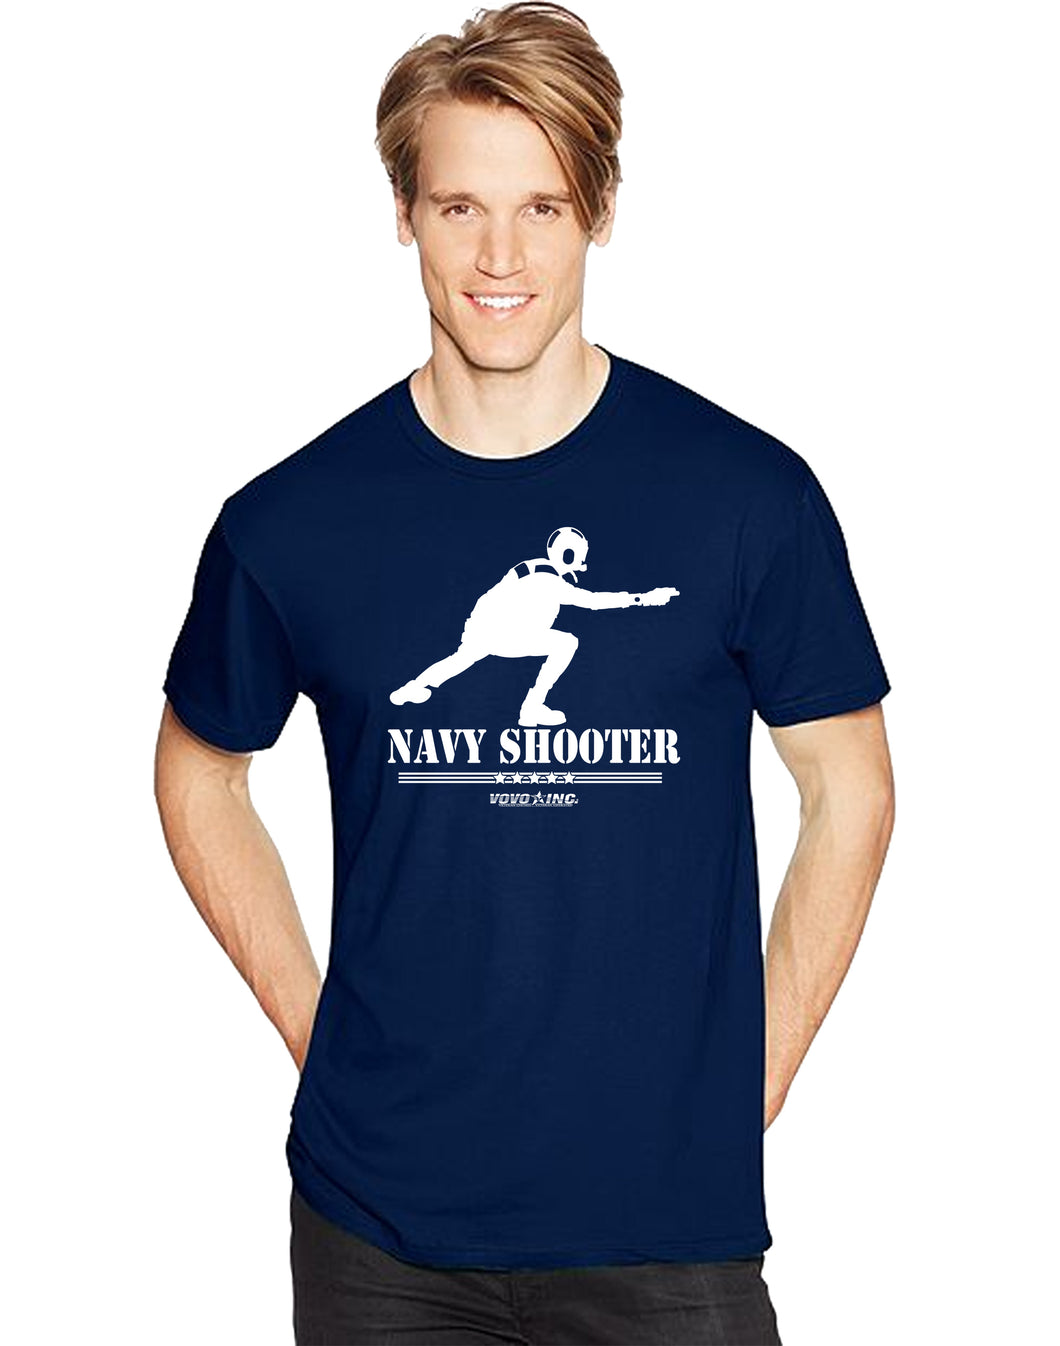 US Military Aviation Flight Deck Shooter ABH Short Sleeve T-Shirt - Vovo Inc